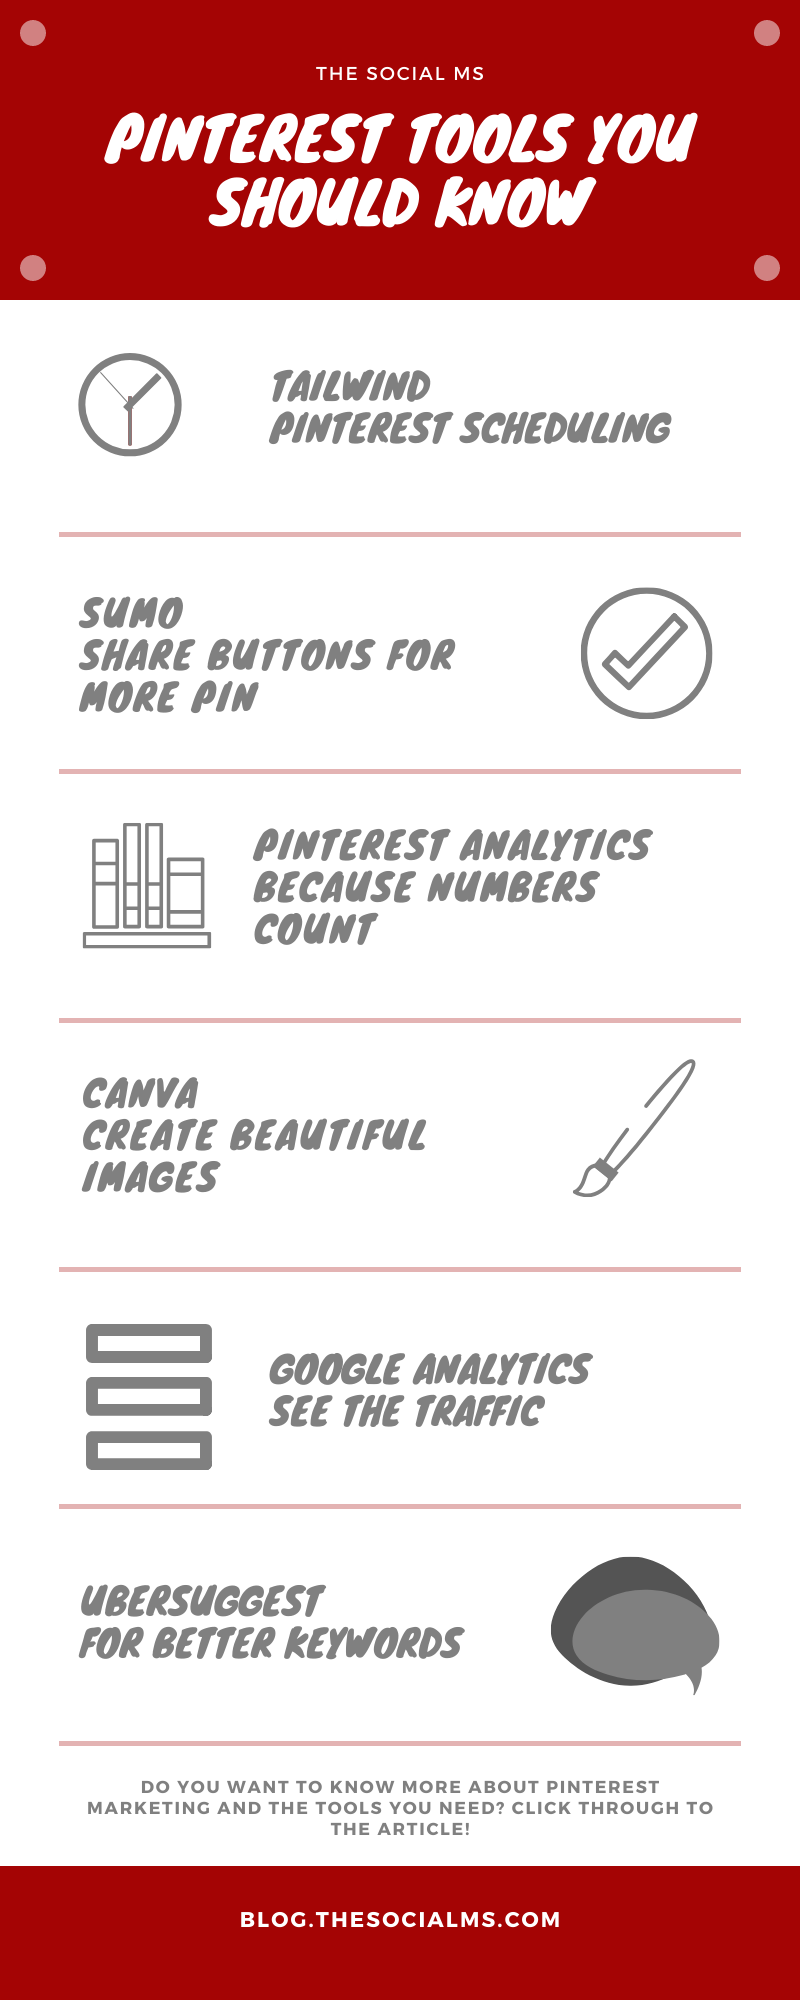 to unlock the full power of Pinterest, you will need the help of some tools. Here are some Pinterest tools that I find useful and that you should try. #pinterest #pinteresttools #pinteresttips #pinterestmarketing #socialmediatips #socialmediatools